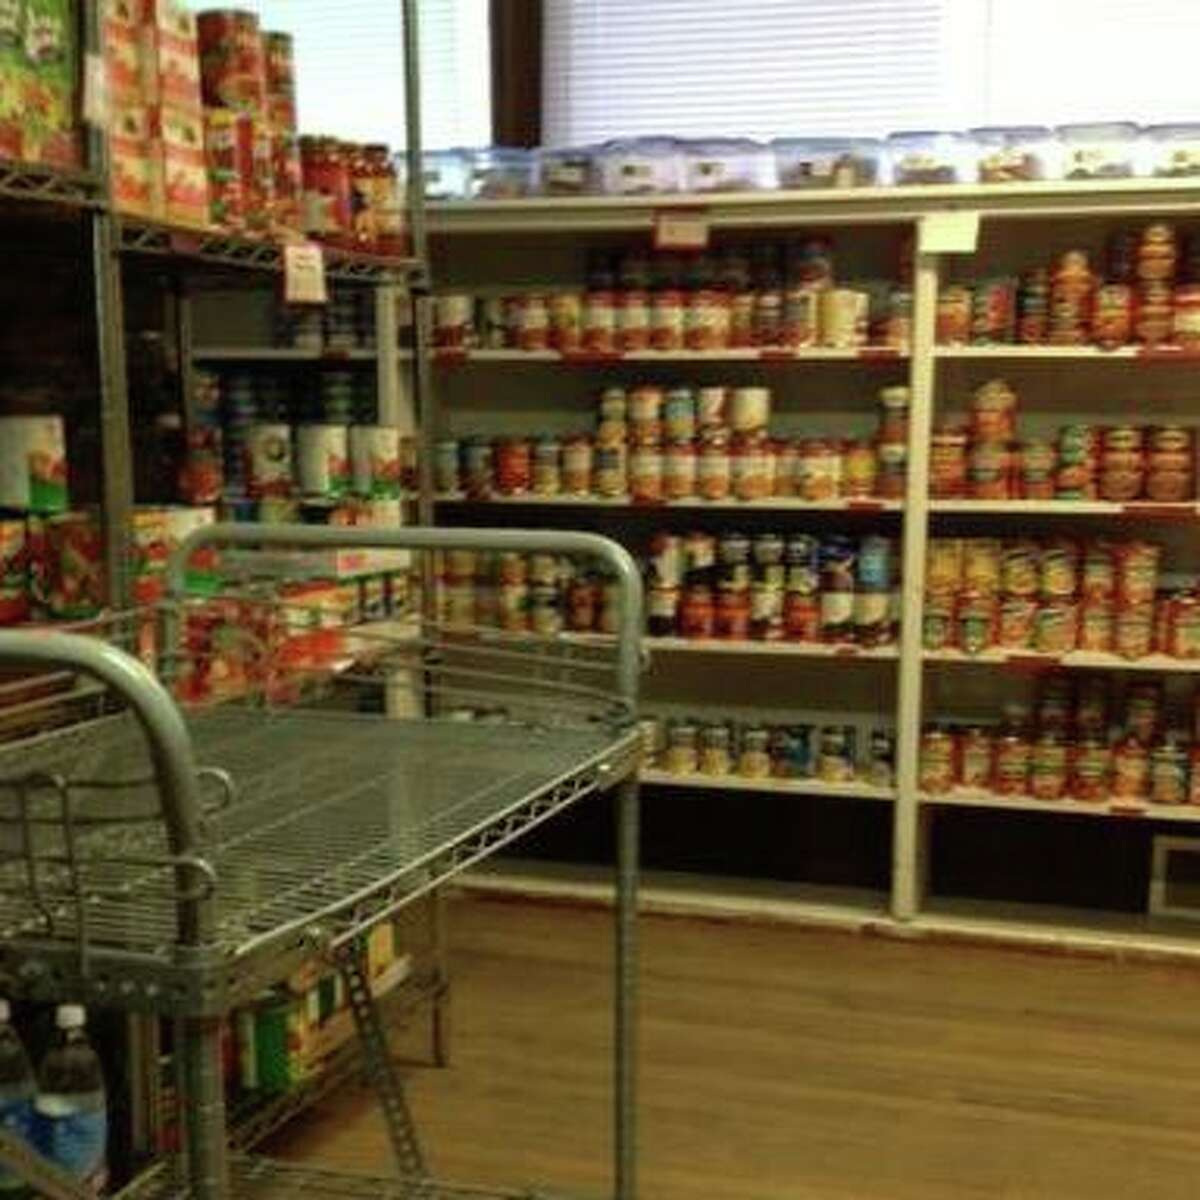 The Monroe Food Pantry is restocking for April, and is in need of donations to refill its shelves.